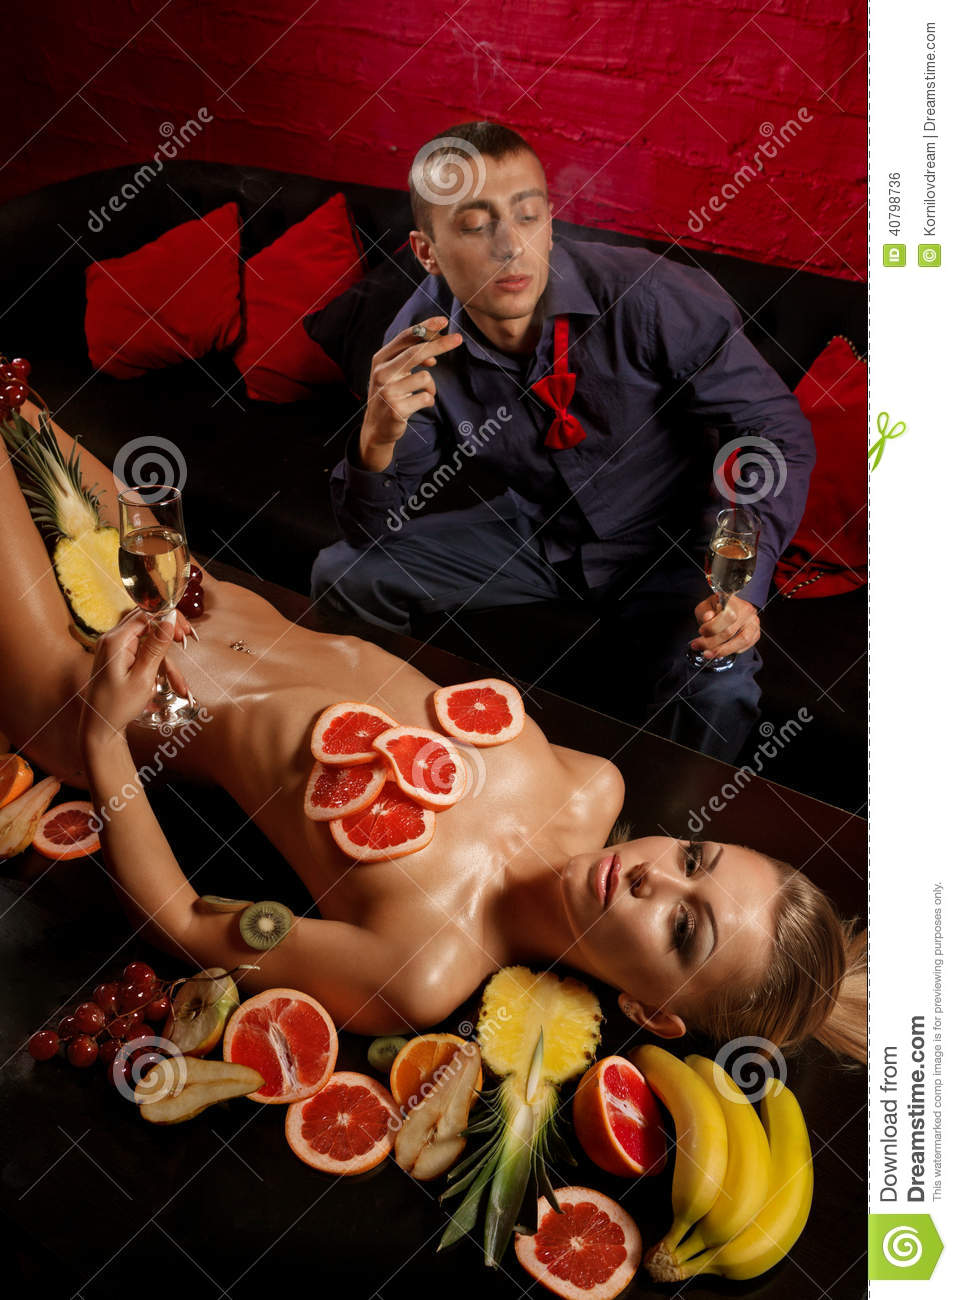 Speaking. Women naked in fruits the